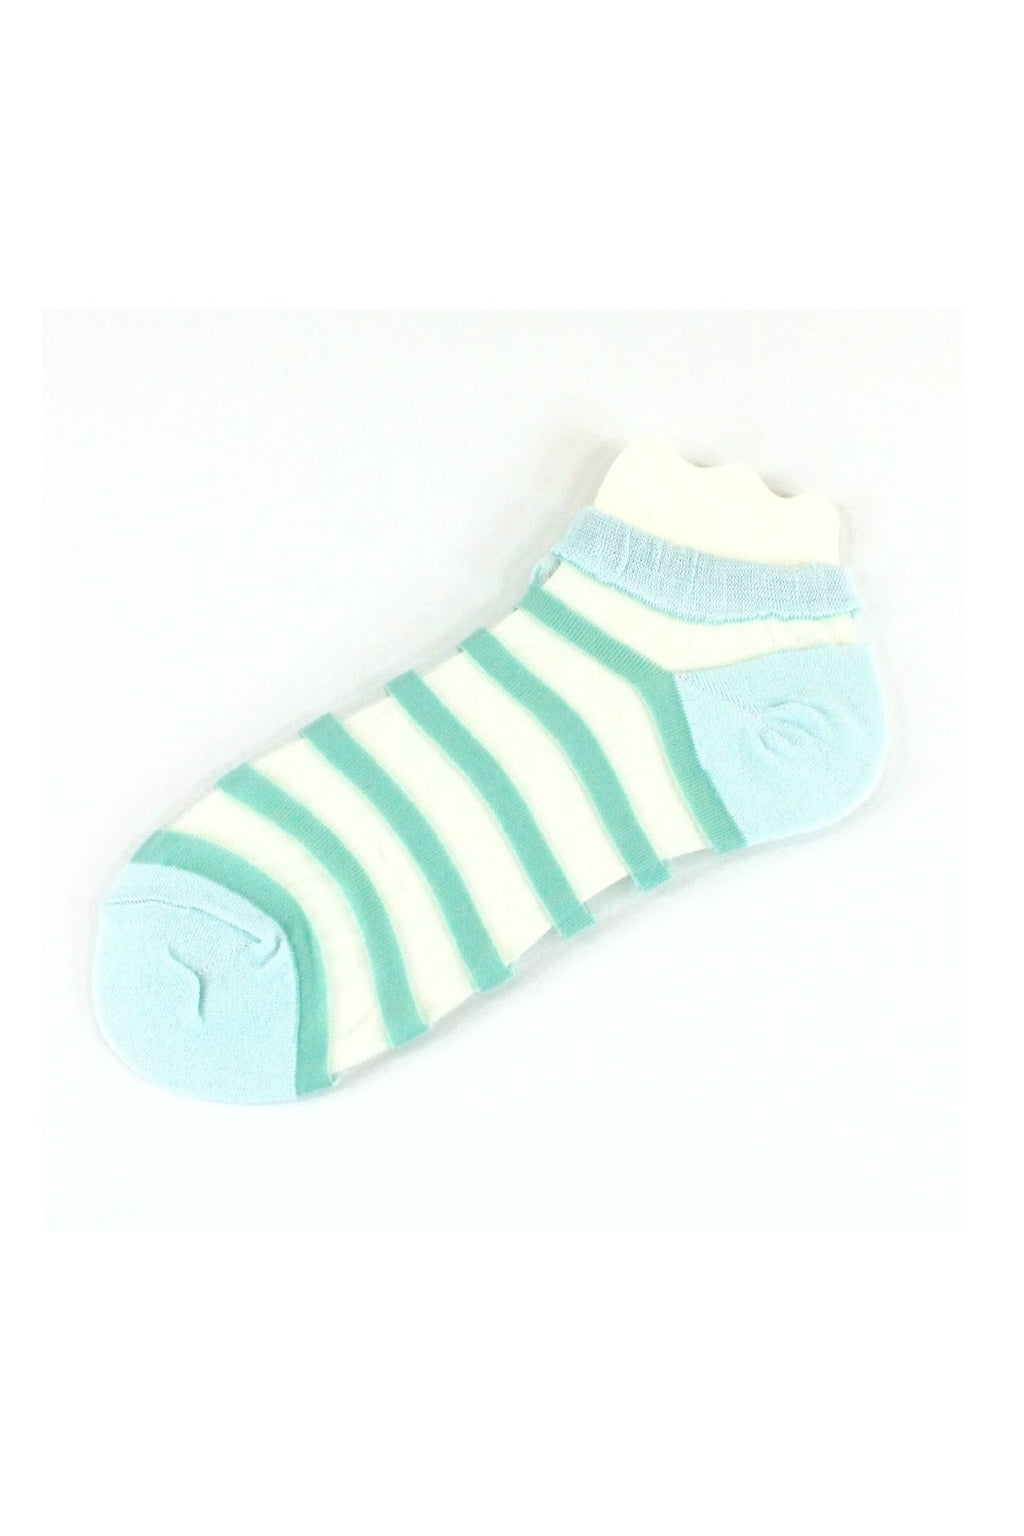 Pretty Persuasions Beach Day Socks - Mint